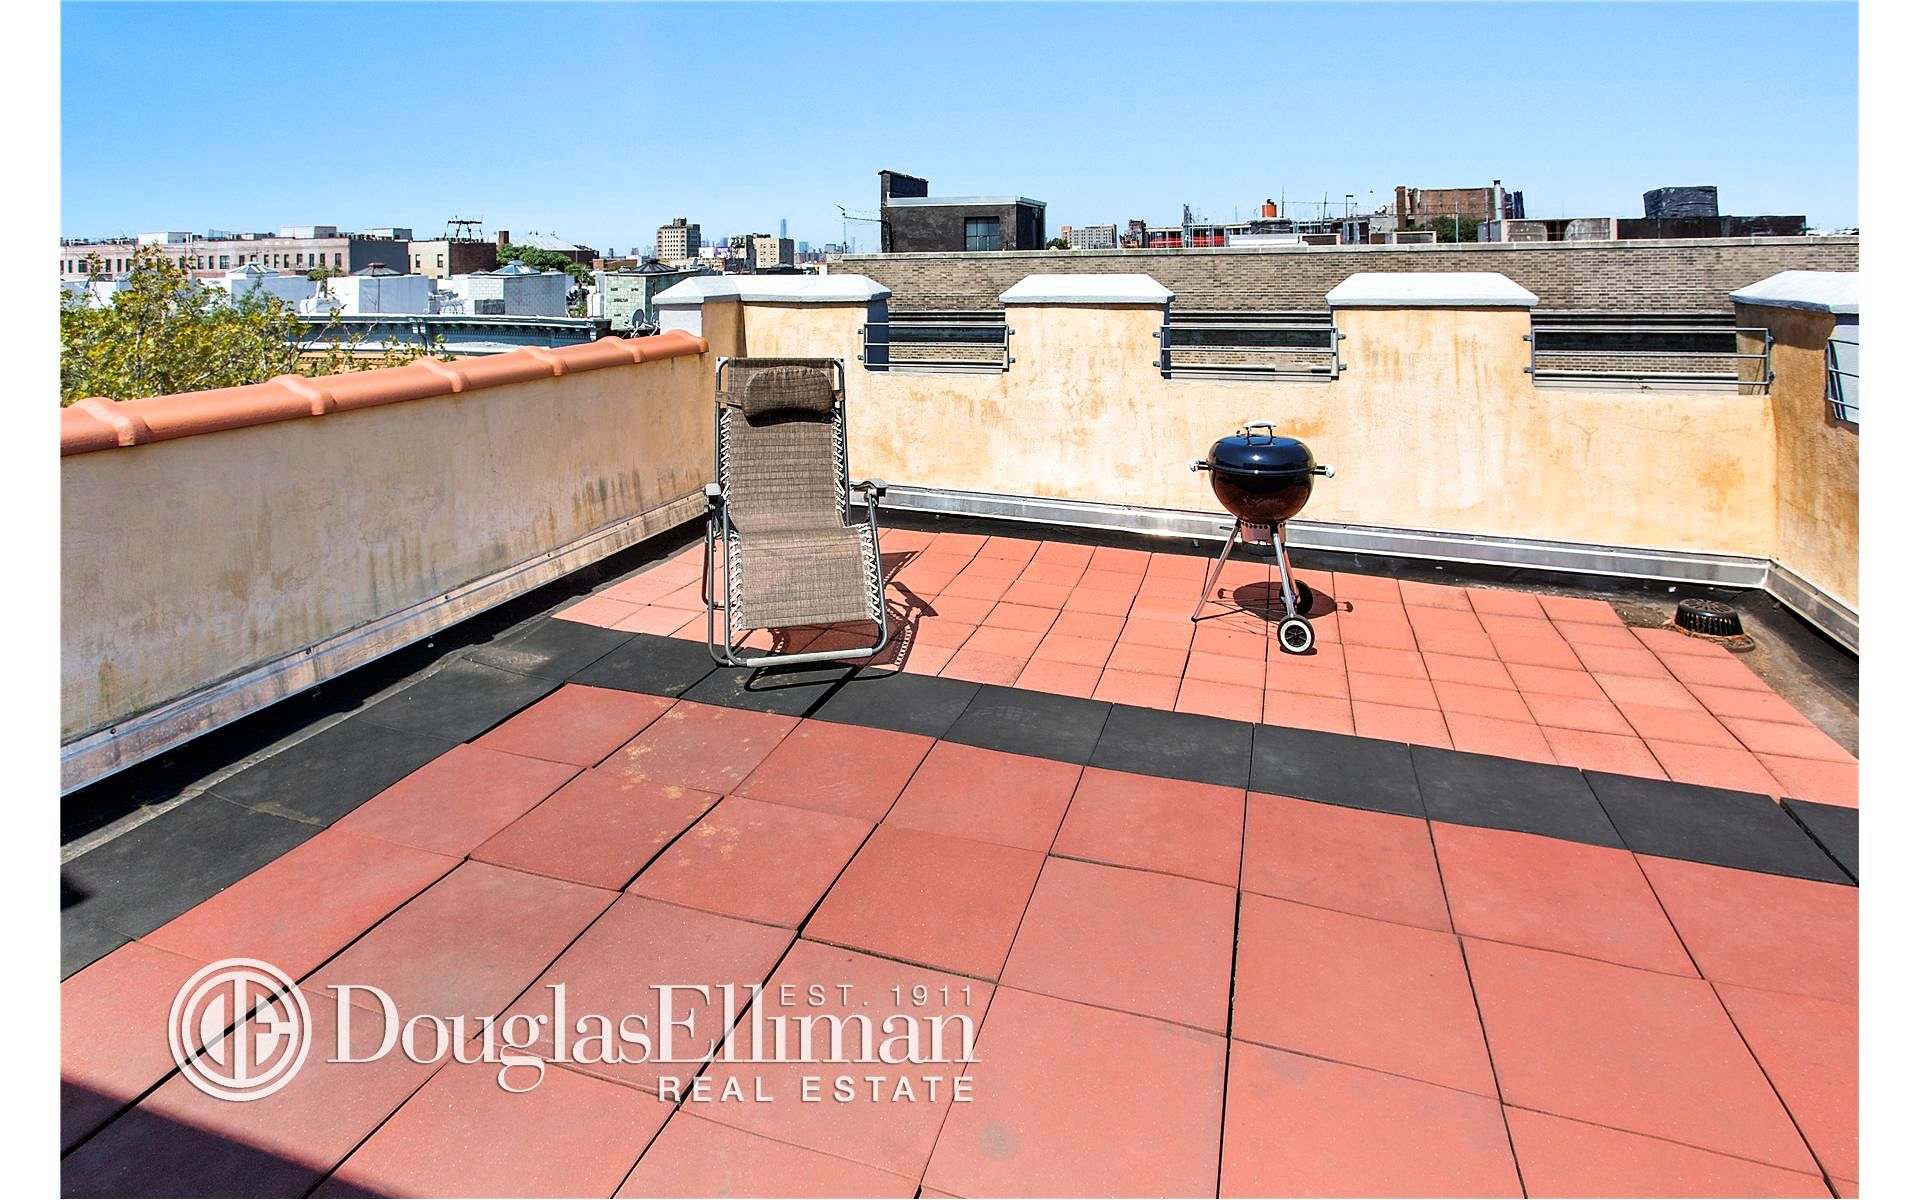 852 Cypress Ave, APT 3A Photo 3 - ELLIMAN-2198361